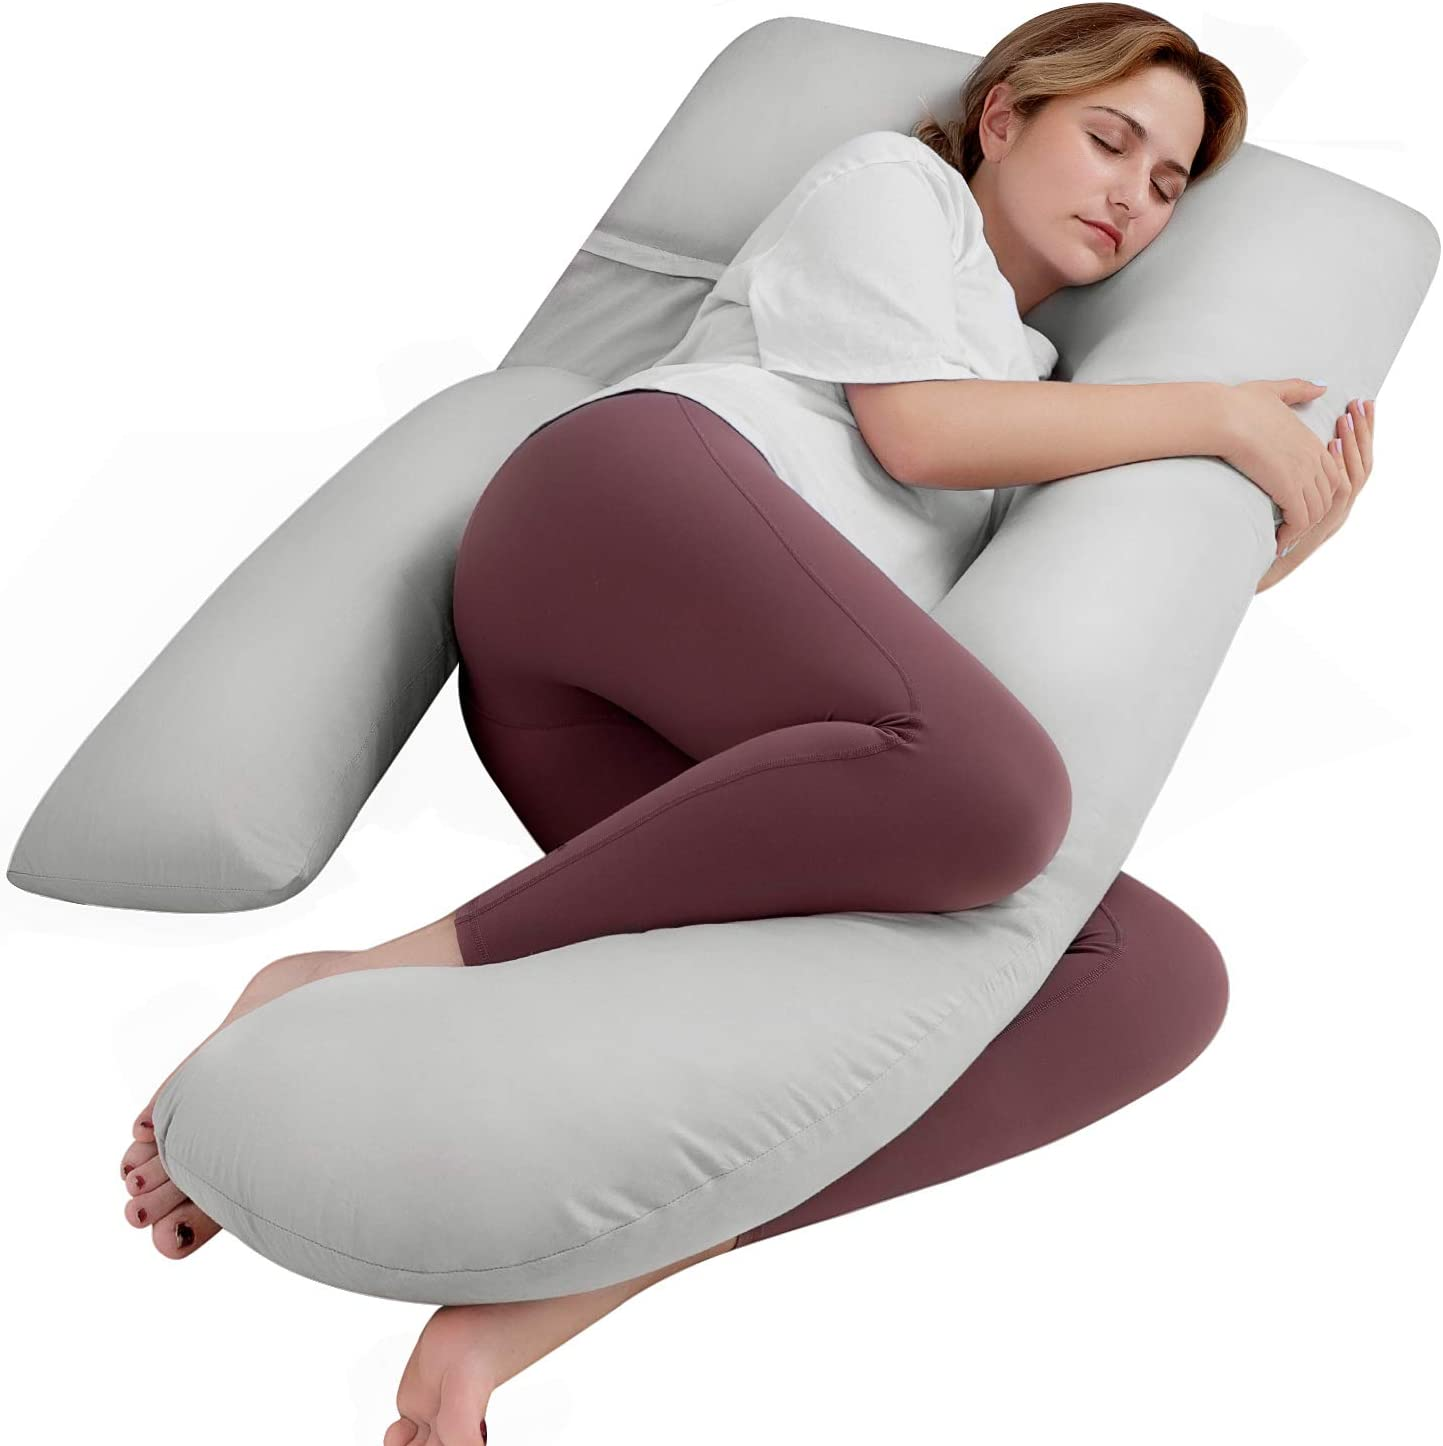 HBselect Full Body Maternity Pillow 9ft